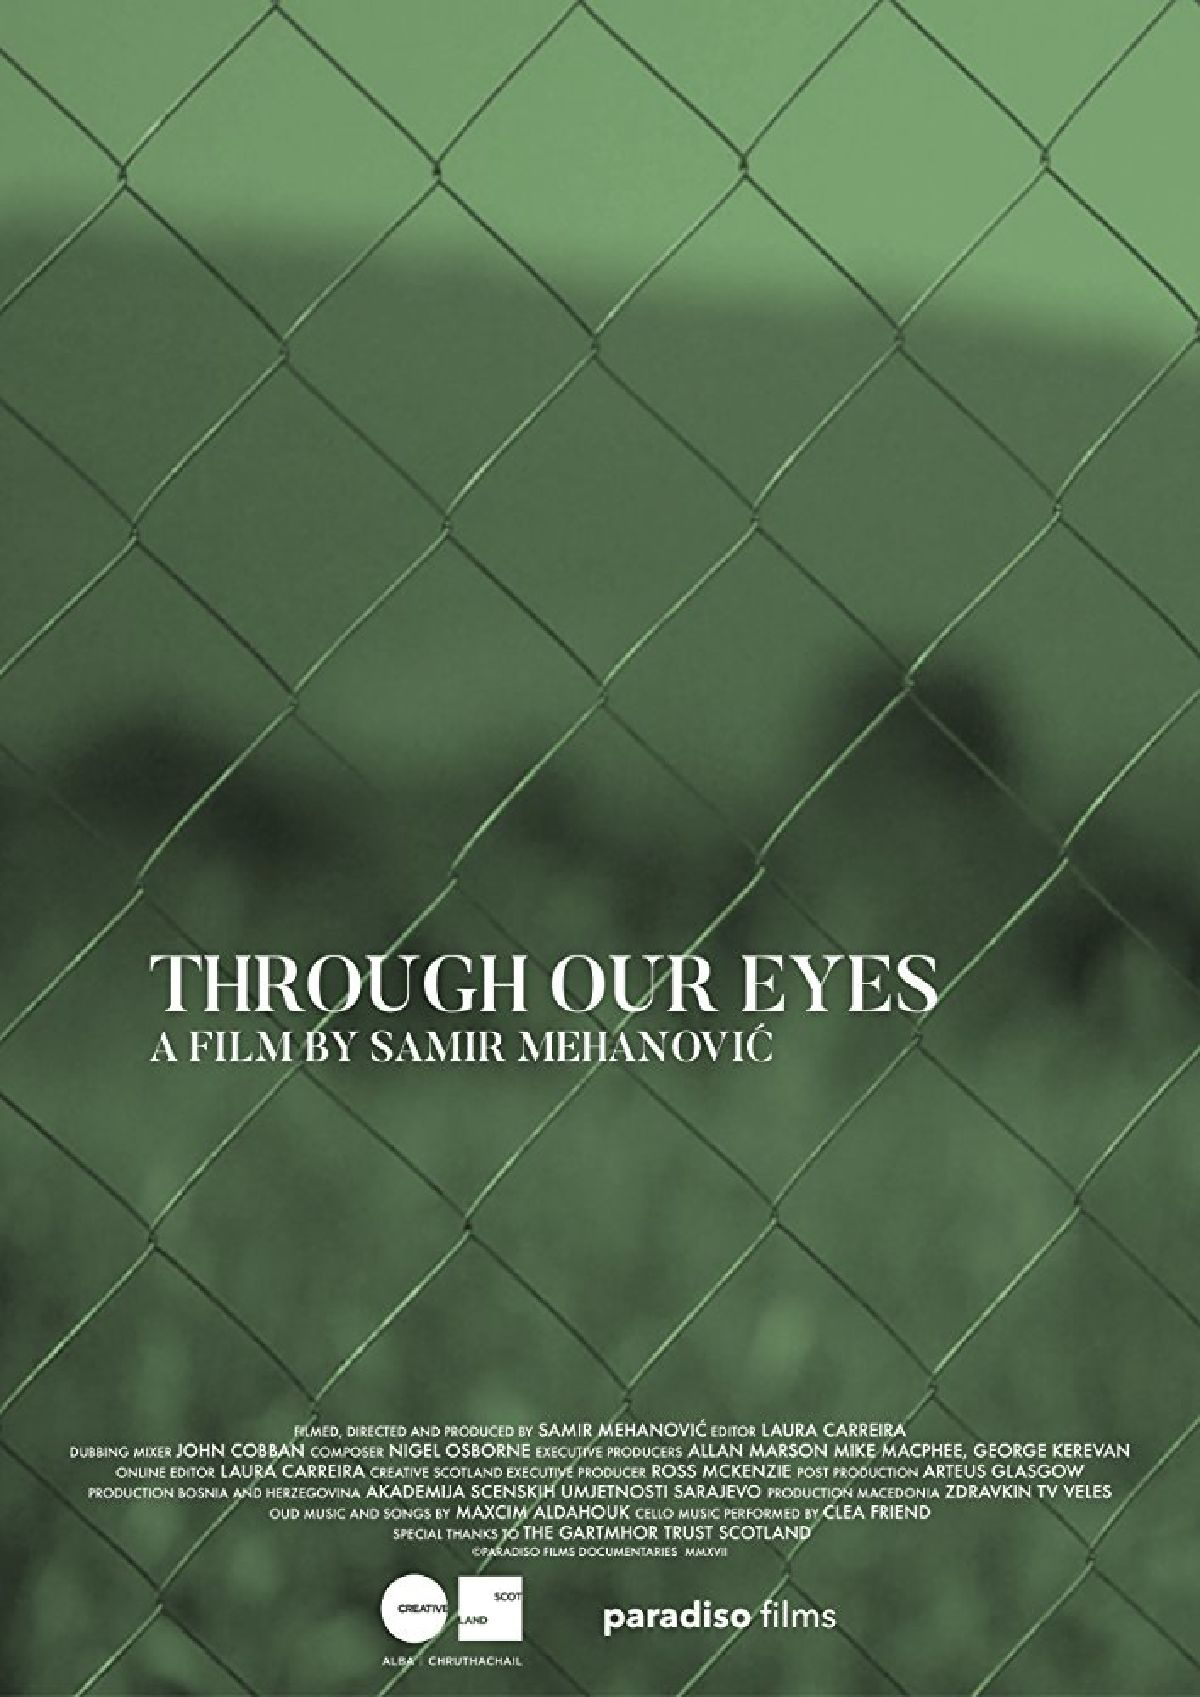 'Through Our Eyes' movie poster